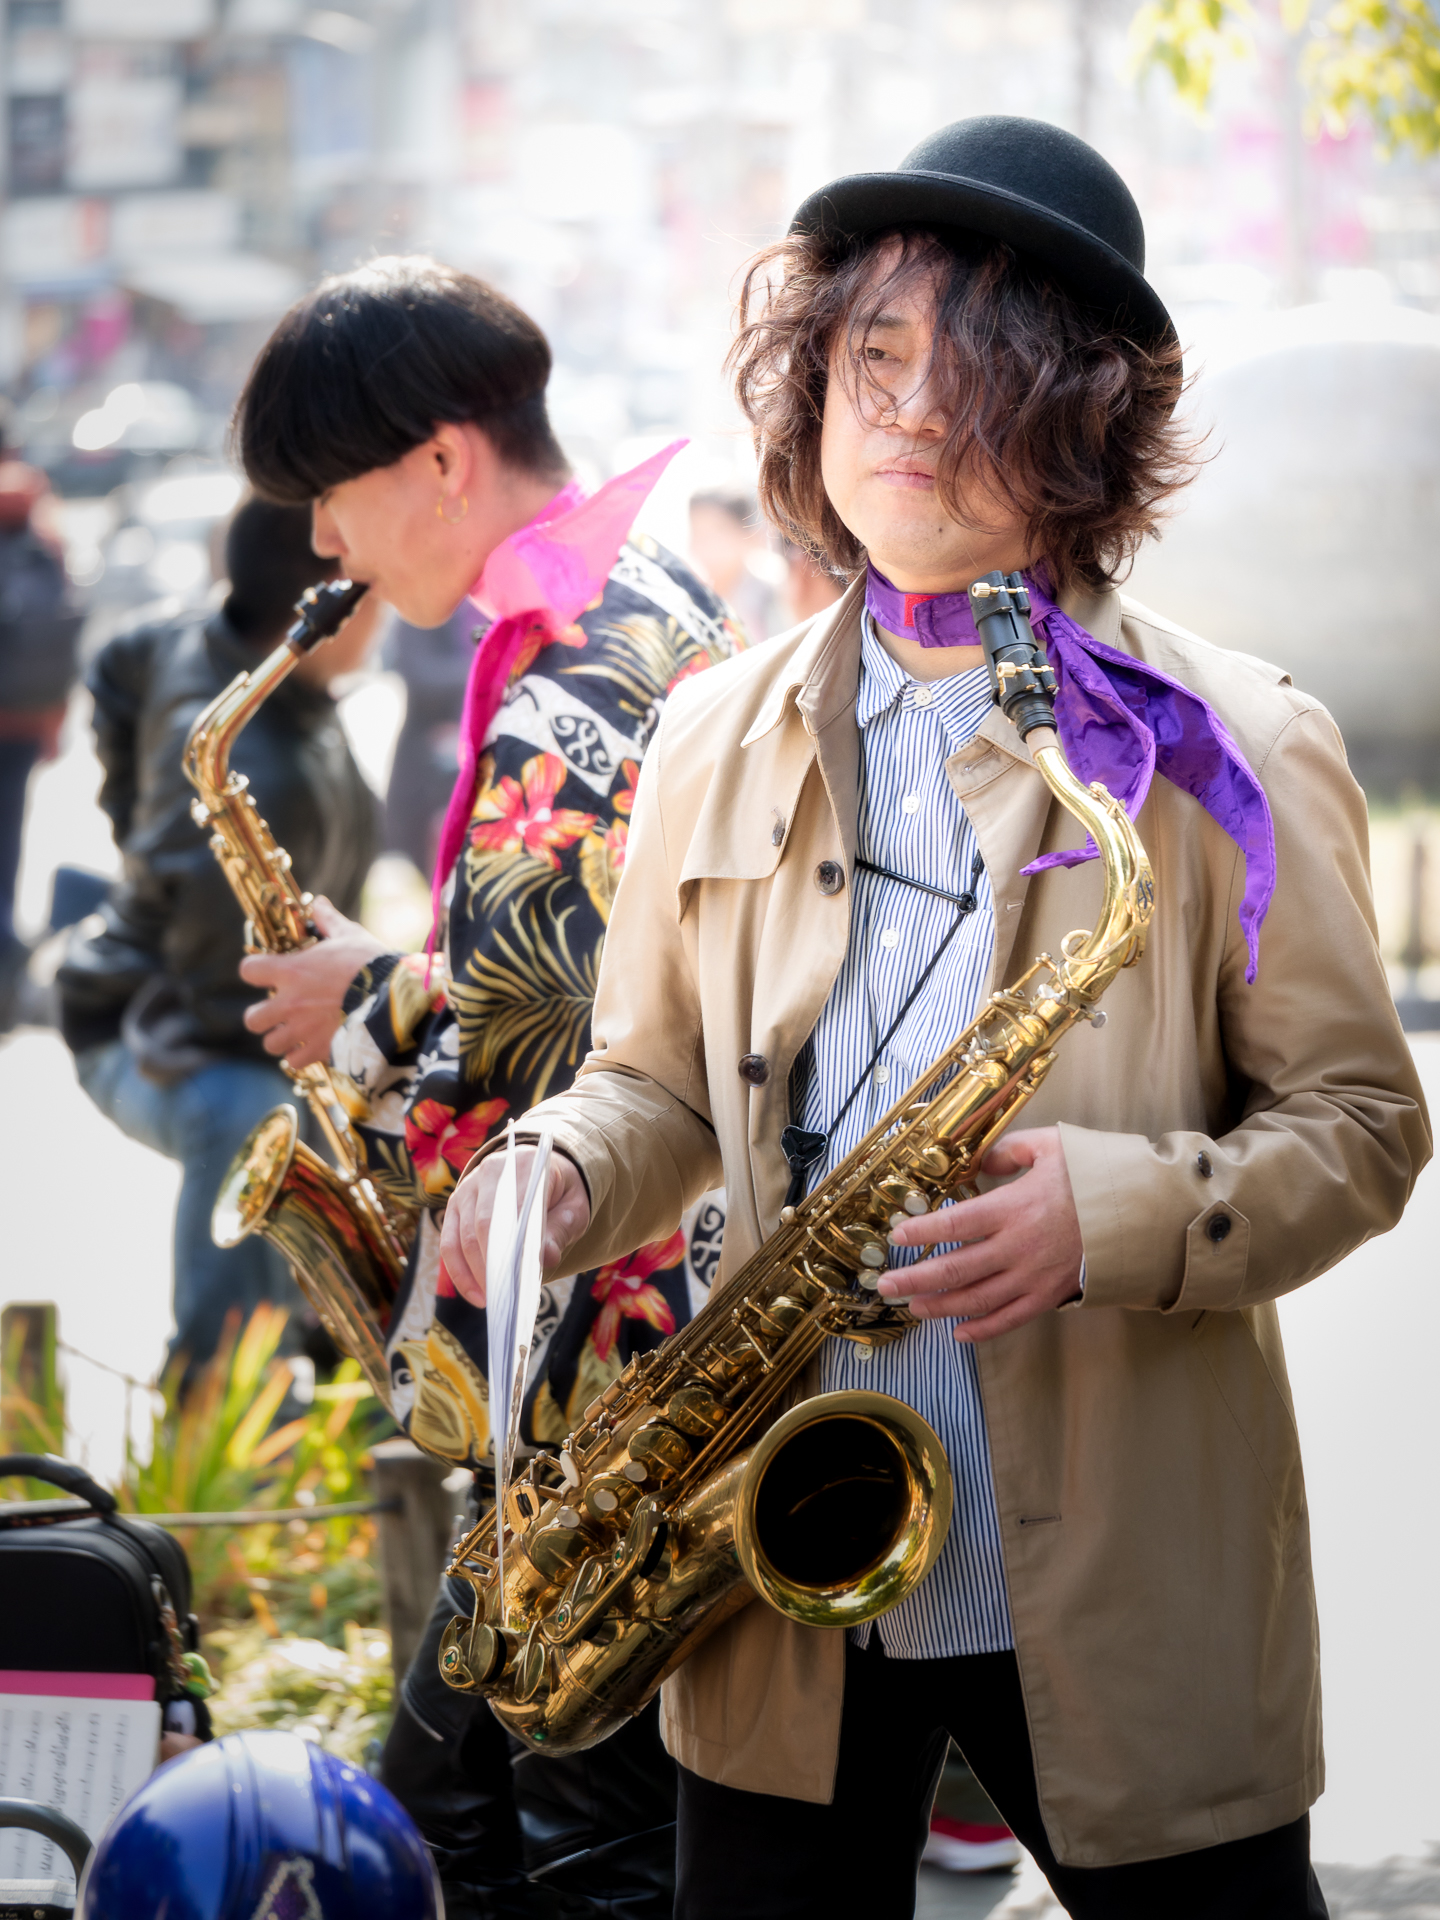 Ueno Jazz (a few moments before the performance)...